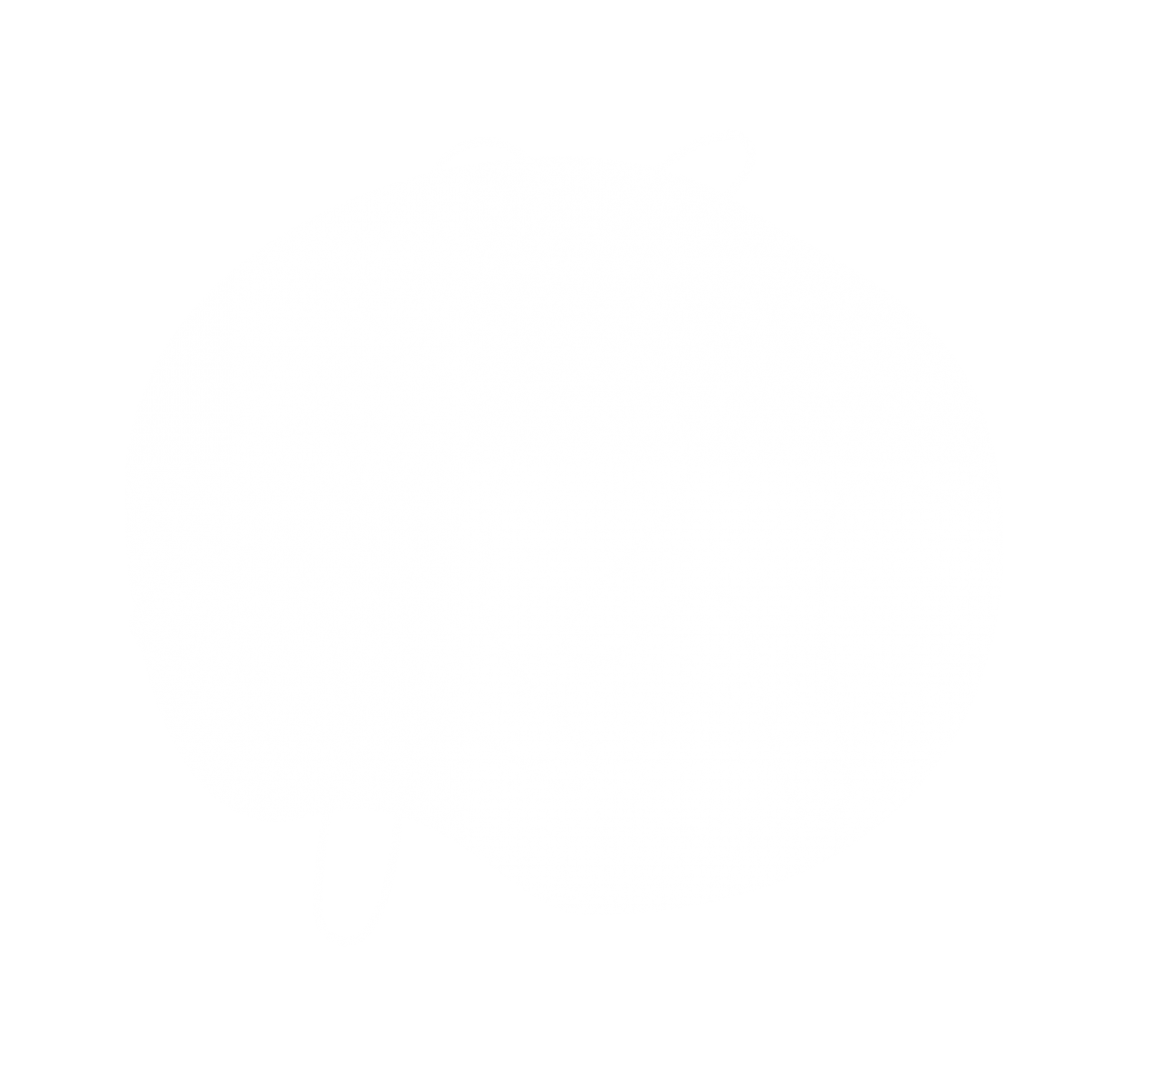 Profile3.png